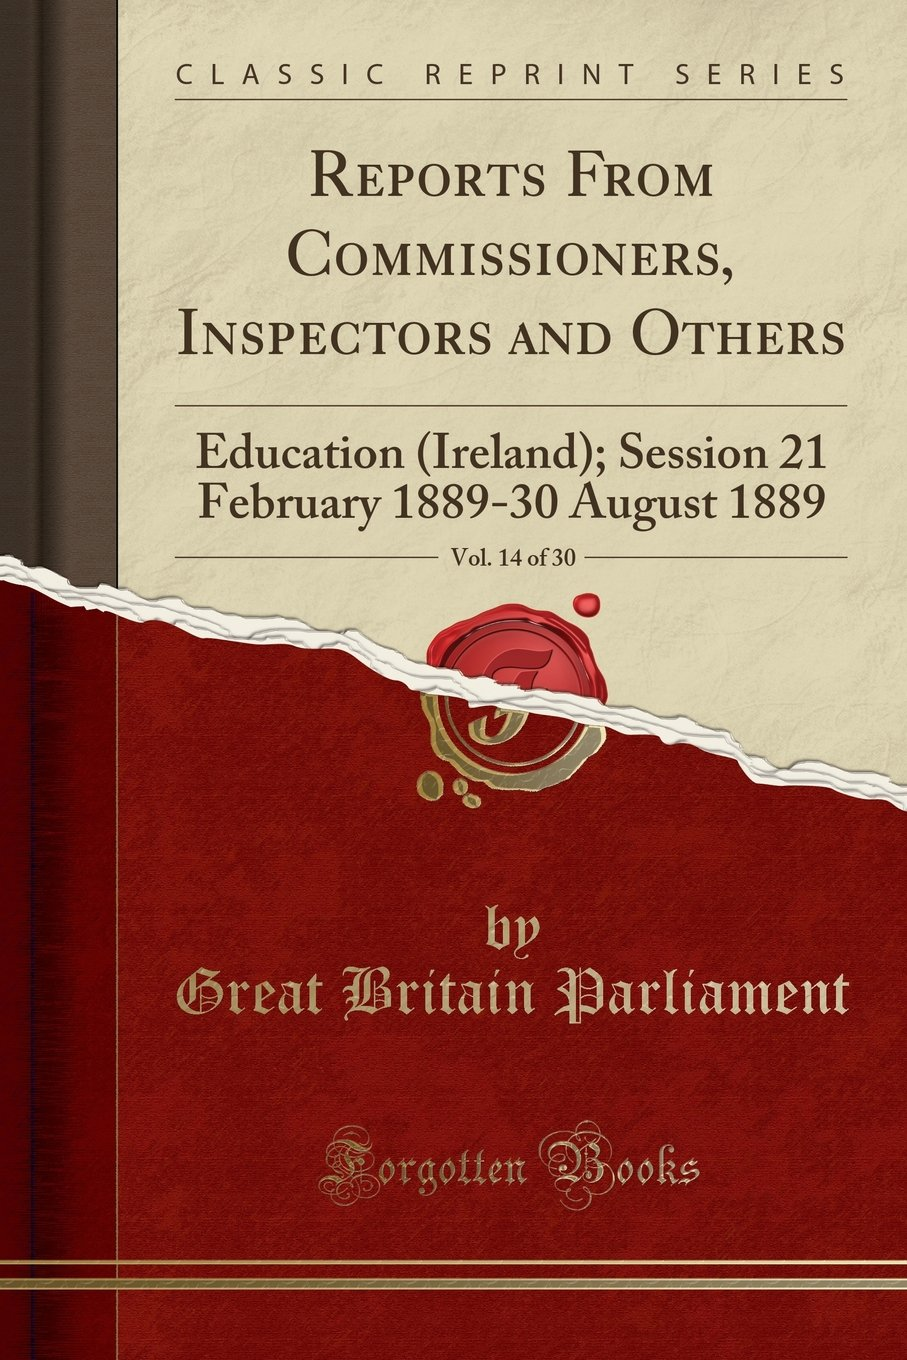 Download Reports From Commissioners, Inspectors and Others, Vol. 14 of 30: Education (Ireland); Session 21 February 1889-30 August 1889 (Classic Reprint) ebook